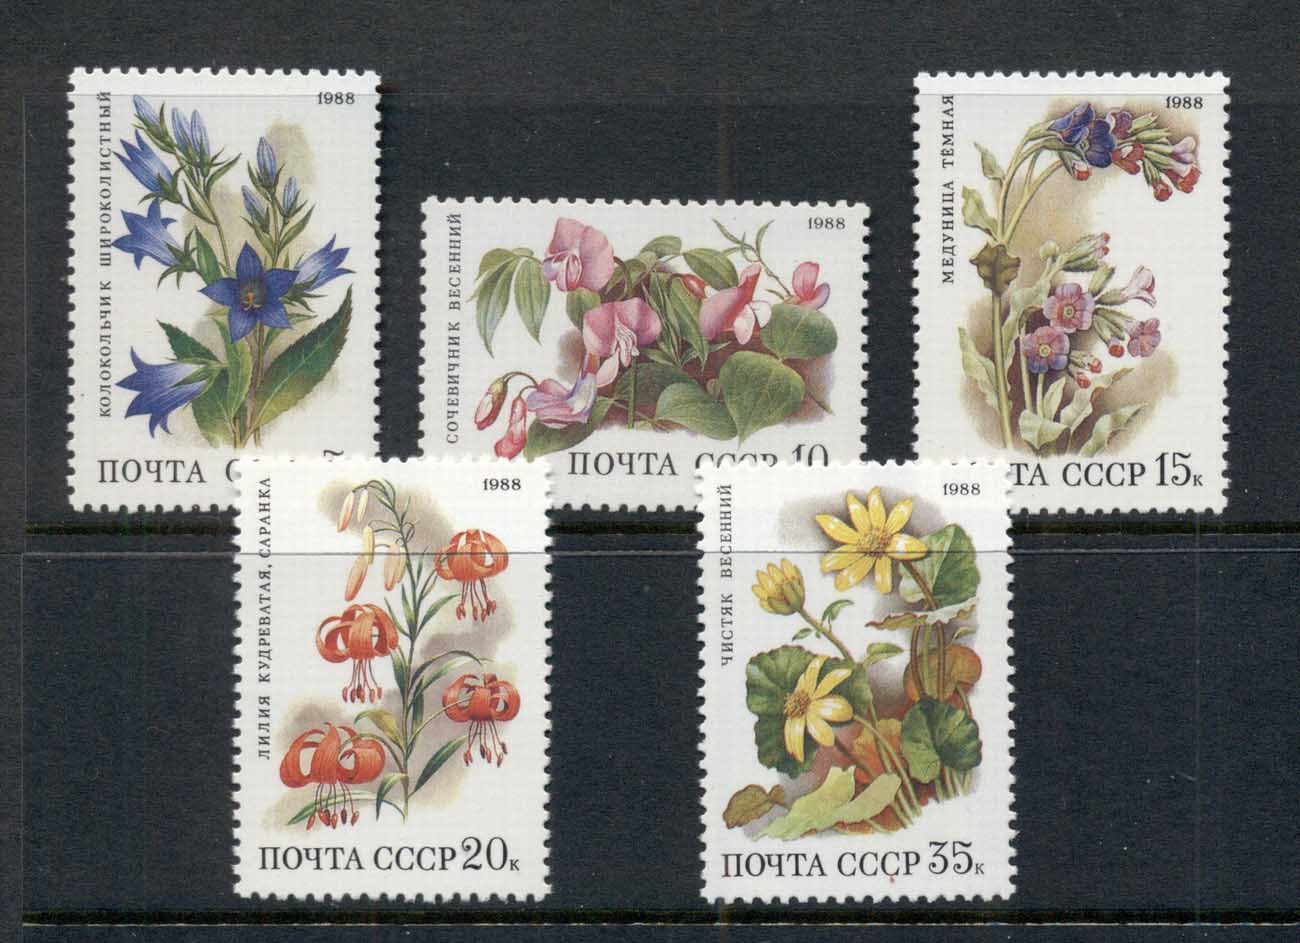 Russia 1988 Deciduous Forest Flowers MUH